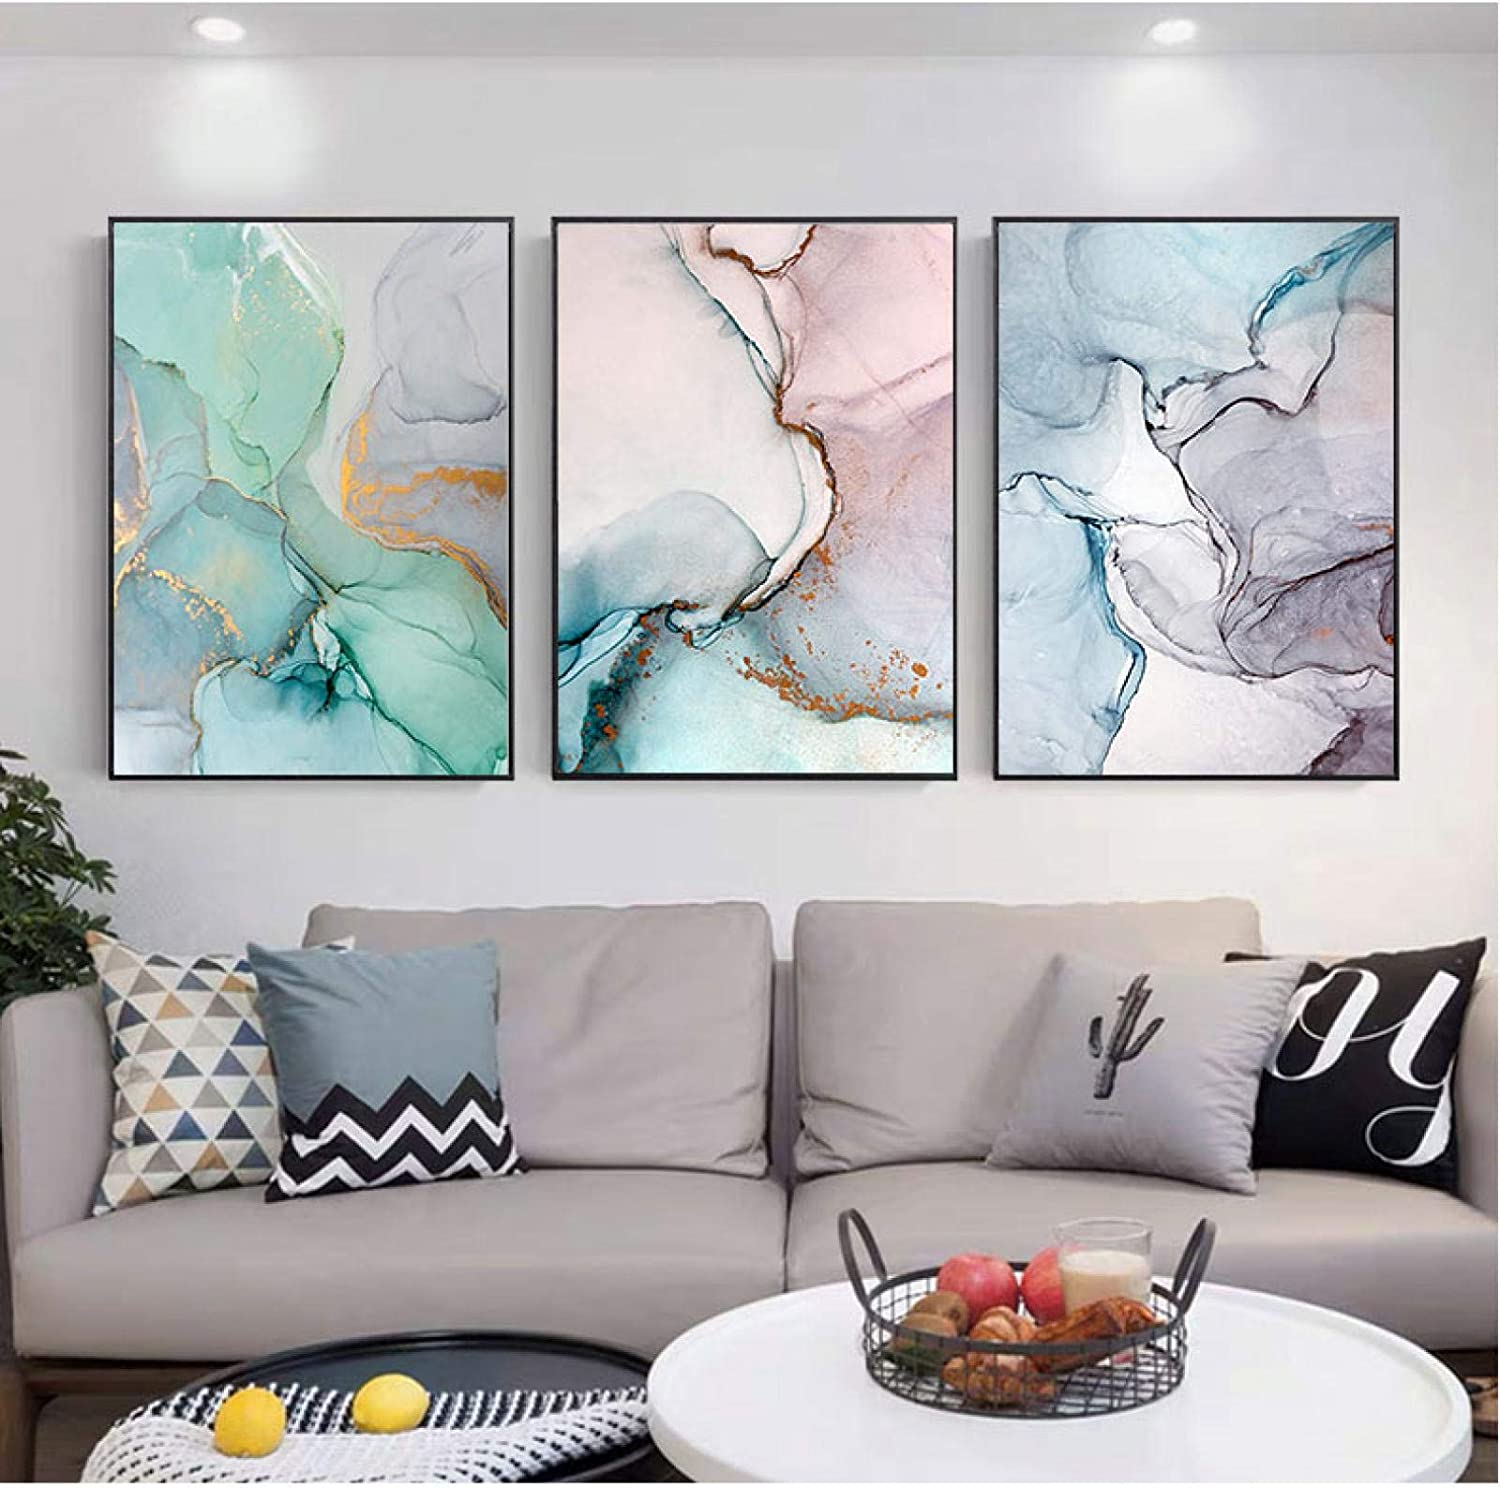 """YQLKC Landscape Golden Blue Ribbon Minimalist Abstract Painting Canvas Painting Poster Modern Wall Art Picture Decor Home 7.9""""x13.8""""(20x35cm) x3 Frameless"""